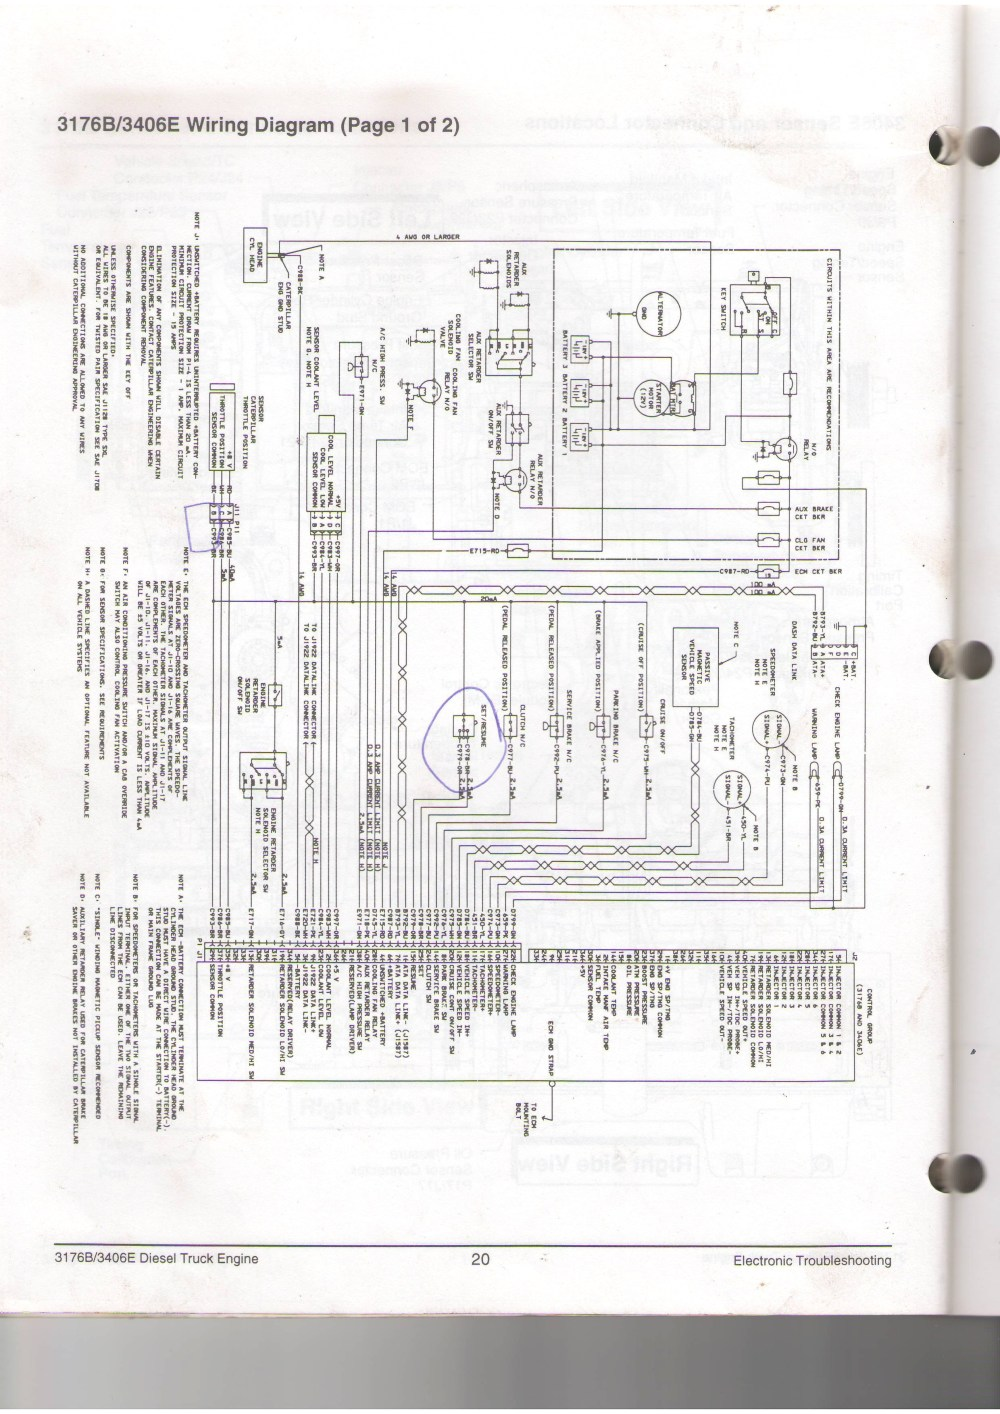 medium resolution of c12 cat engine ecm diagram wiring diagram centre cat c12 ecm pin wiring diagram